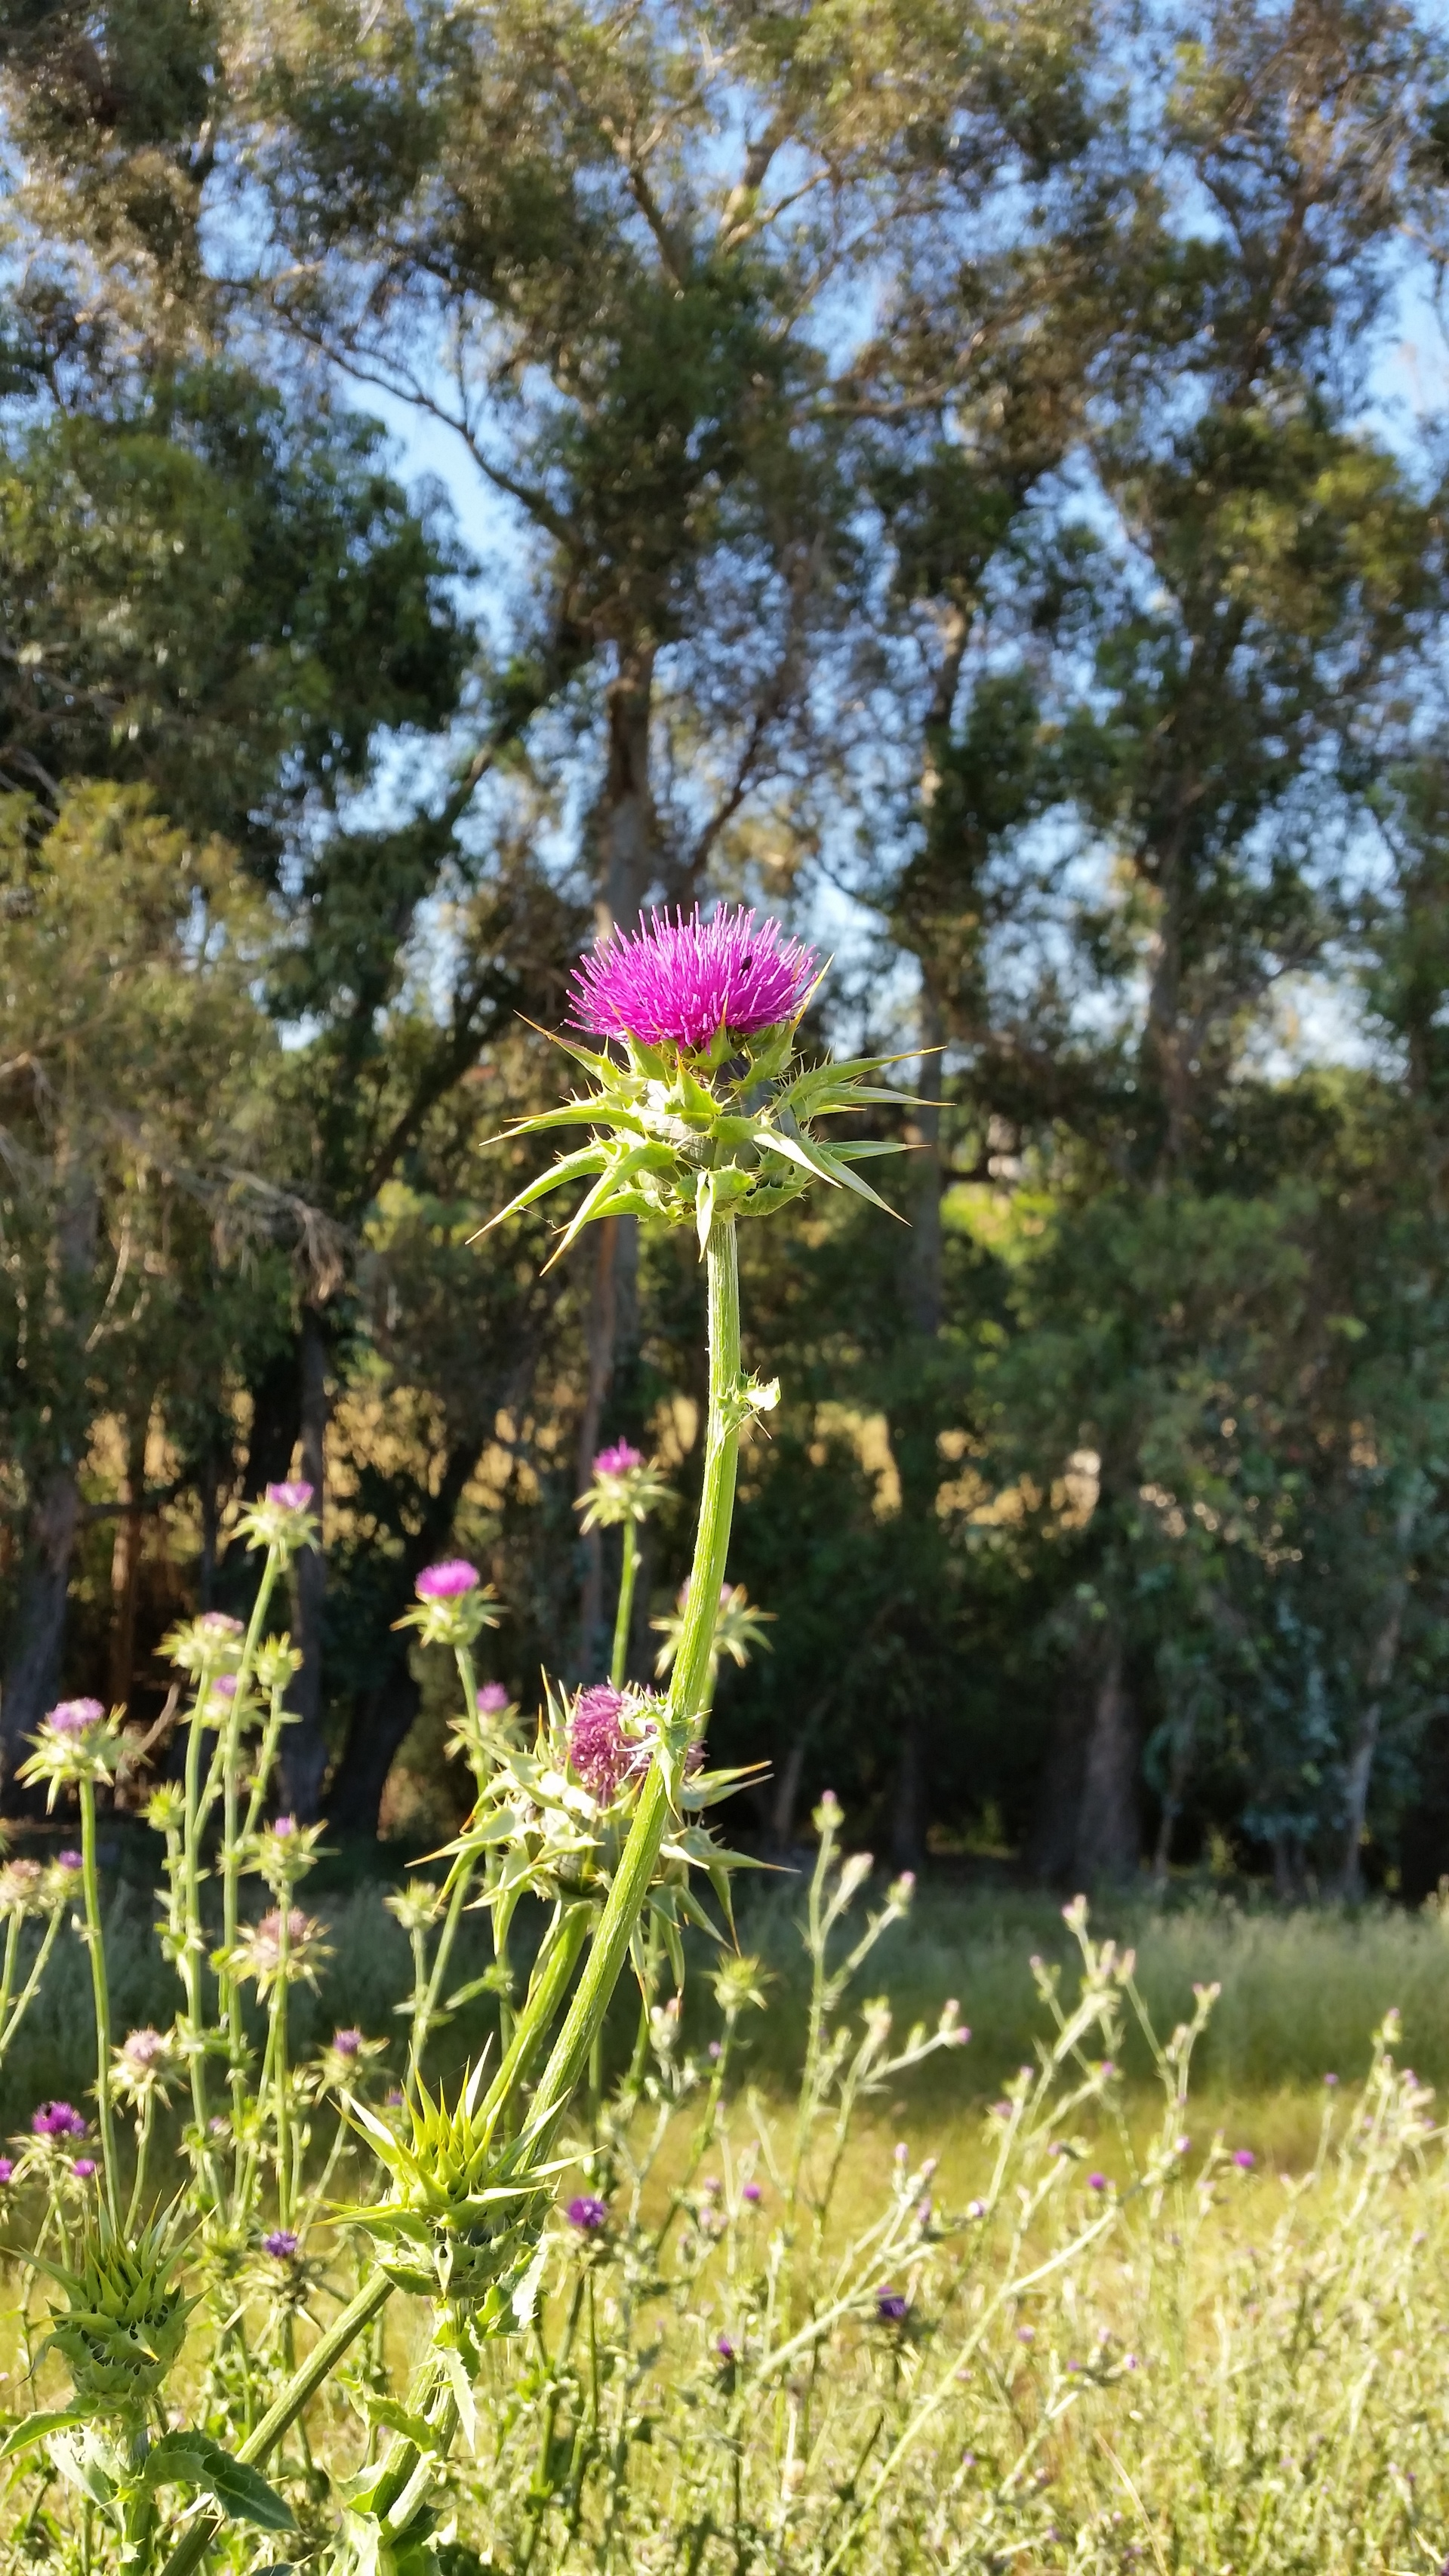 Thistle, weed with pink thorny flowers